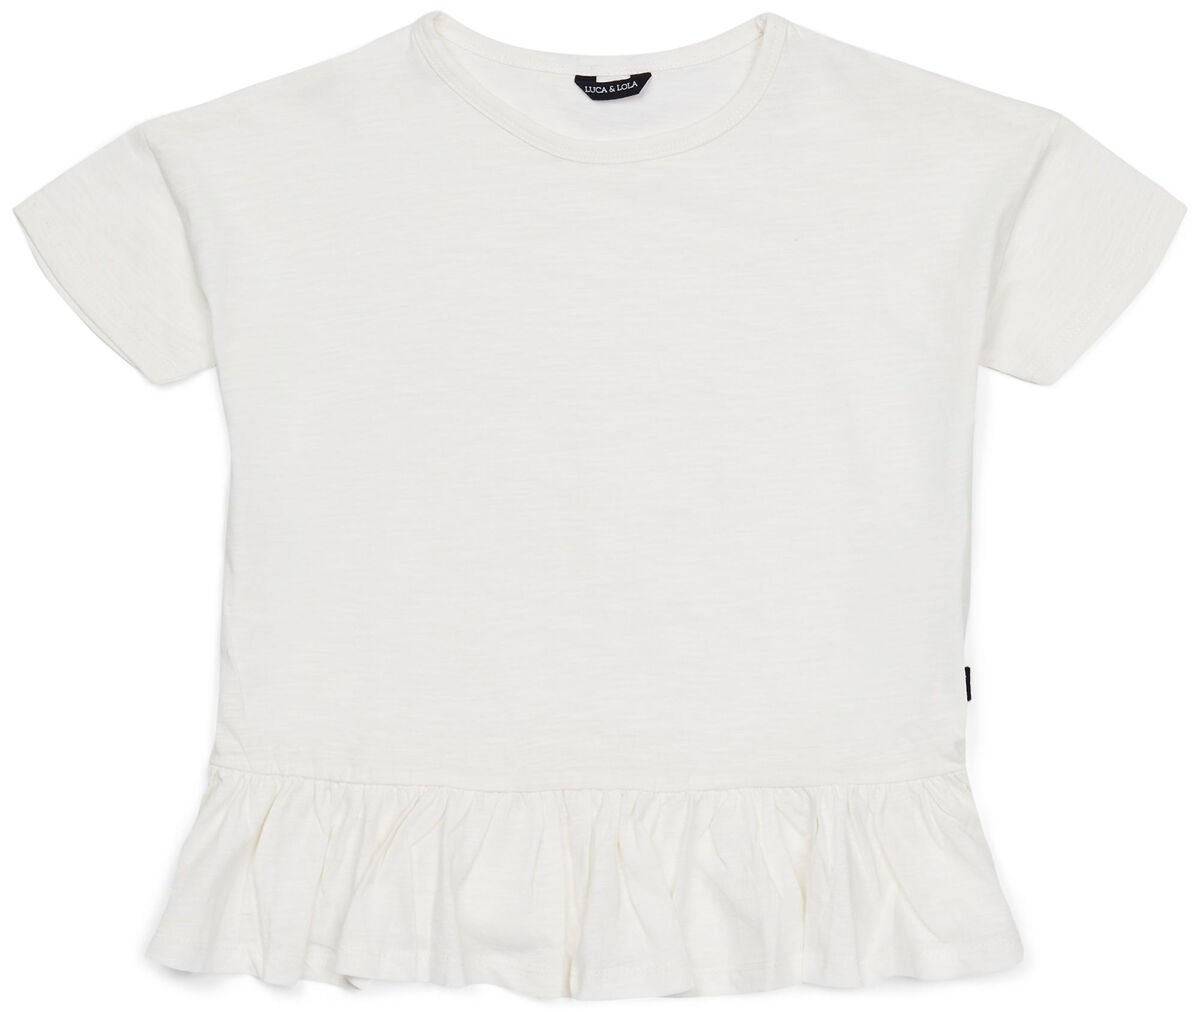 Luca & Lola Natalia Top, White